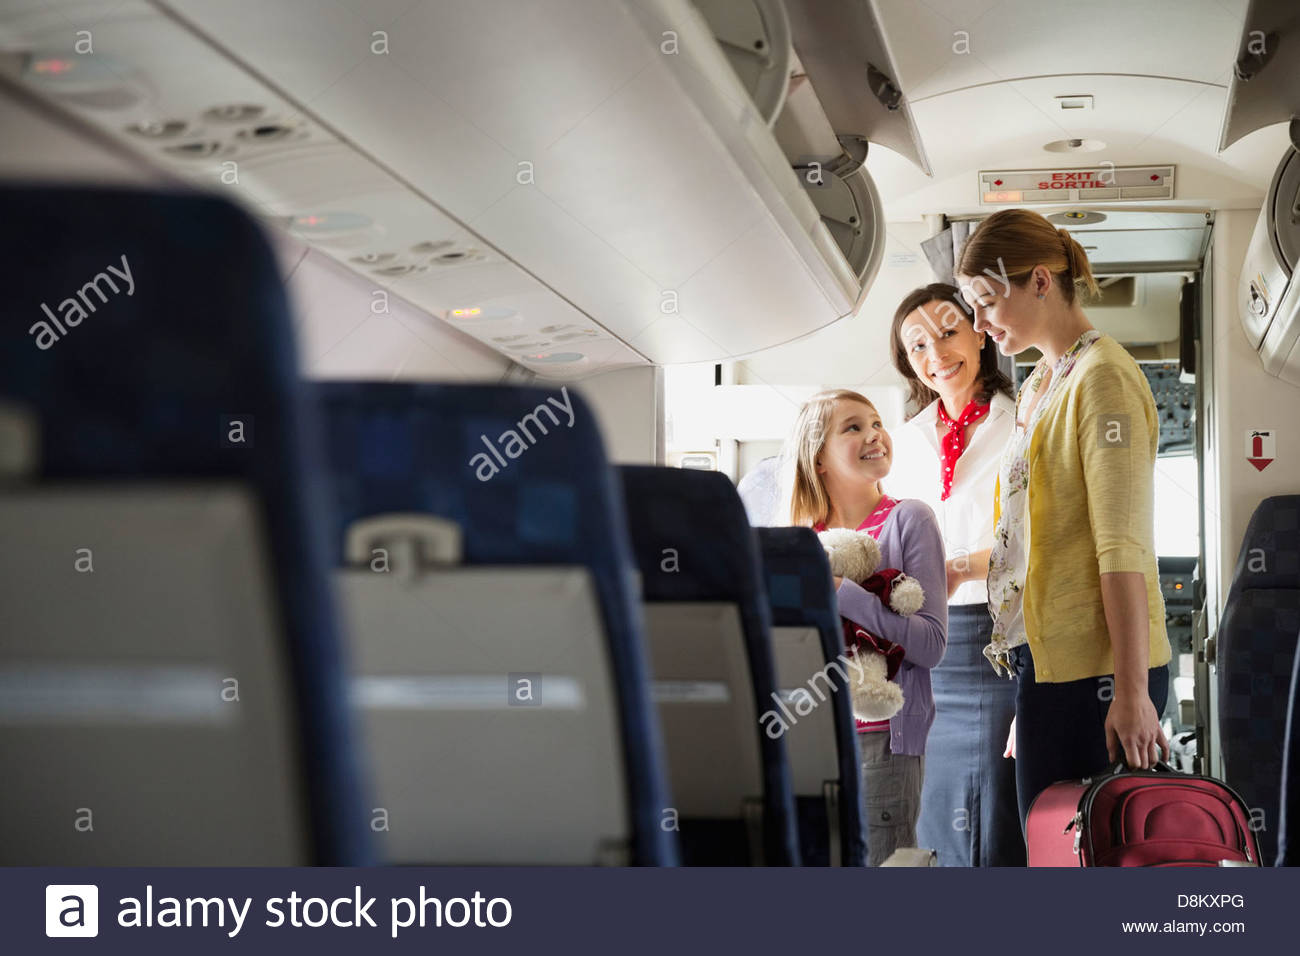 Flight attendant helping woman and daughter disembark airplane - Stock Image